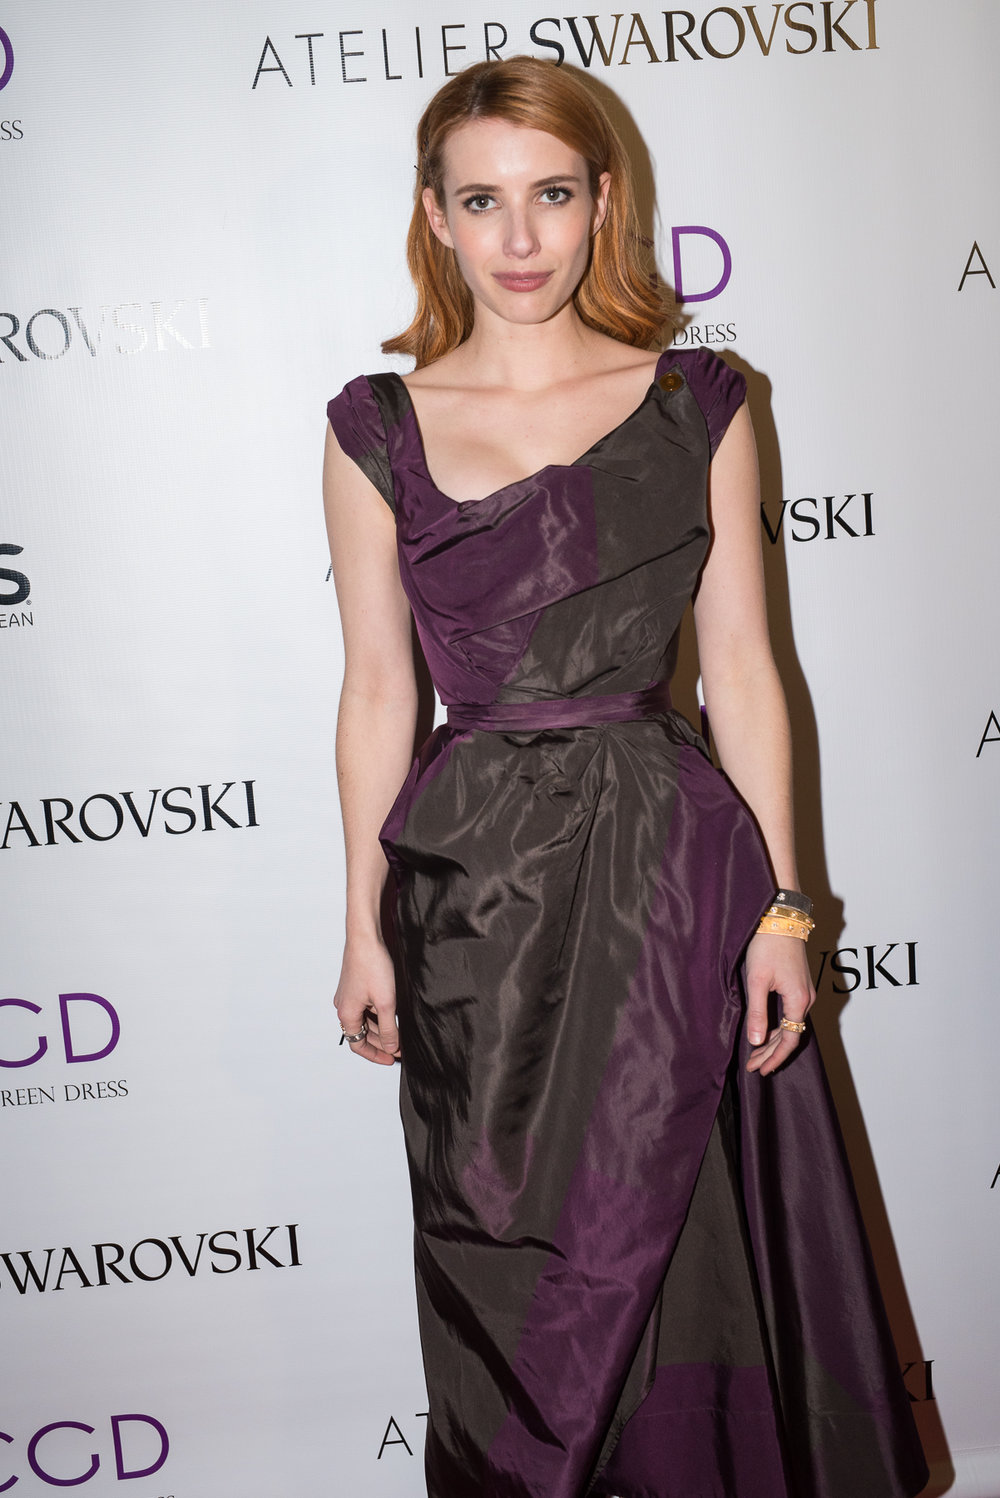 """""""Scream Queens"""" Emma Roberts Attends at Red Carpet Green Dress in Partnership with Atelier Swarovski 8th Annual Pre-Oscar Celebration as a celebrity partner for the 2017 initiative."""